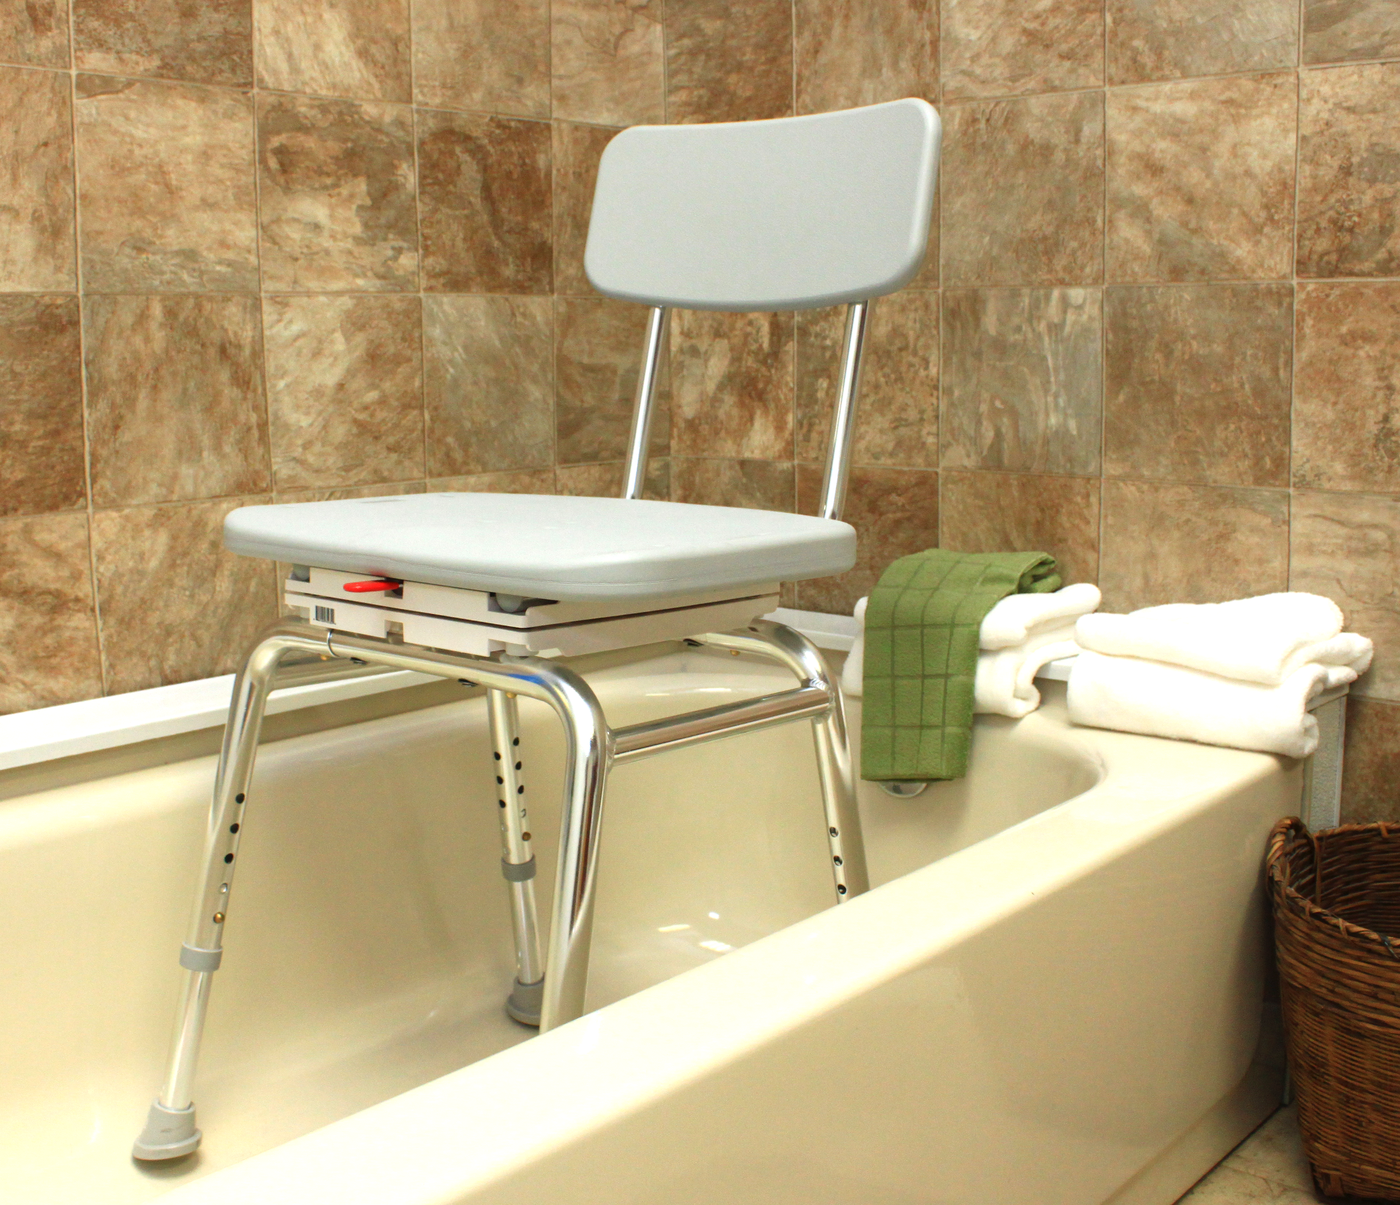 Eagle Health: Swivel Shower Chair - 75232